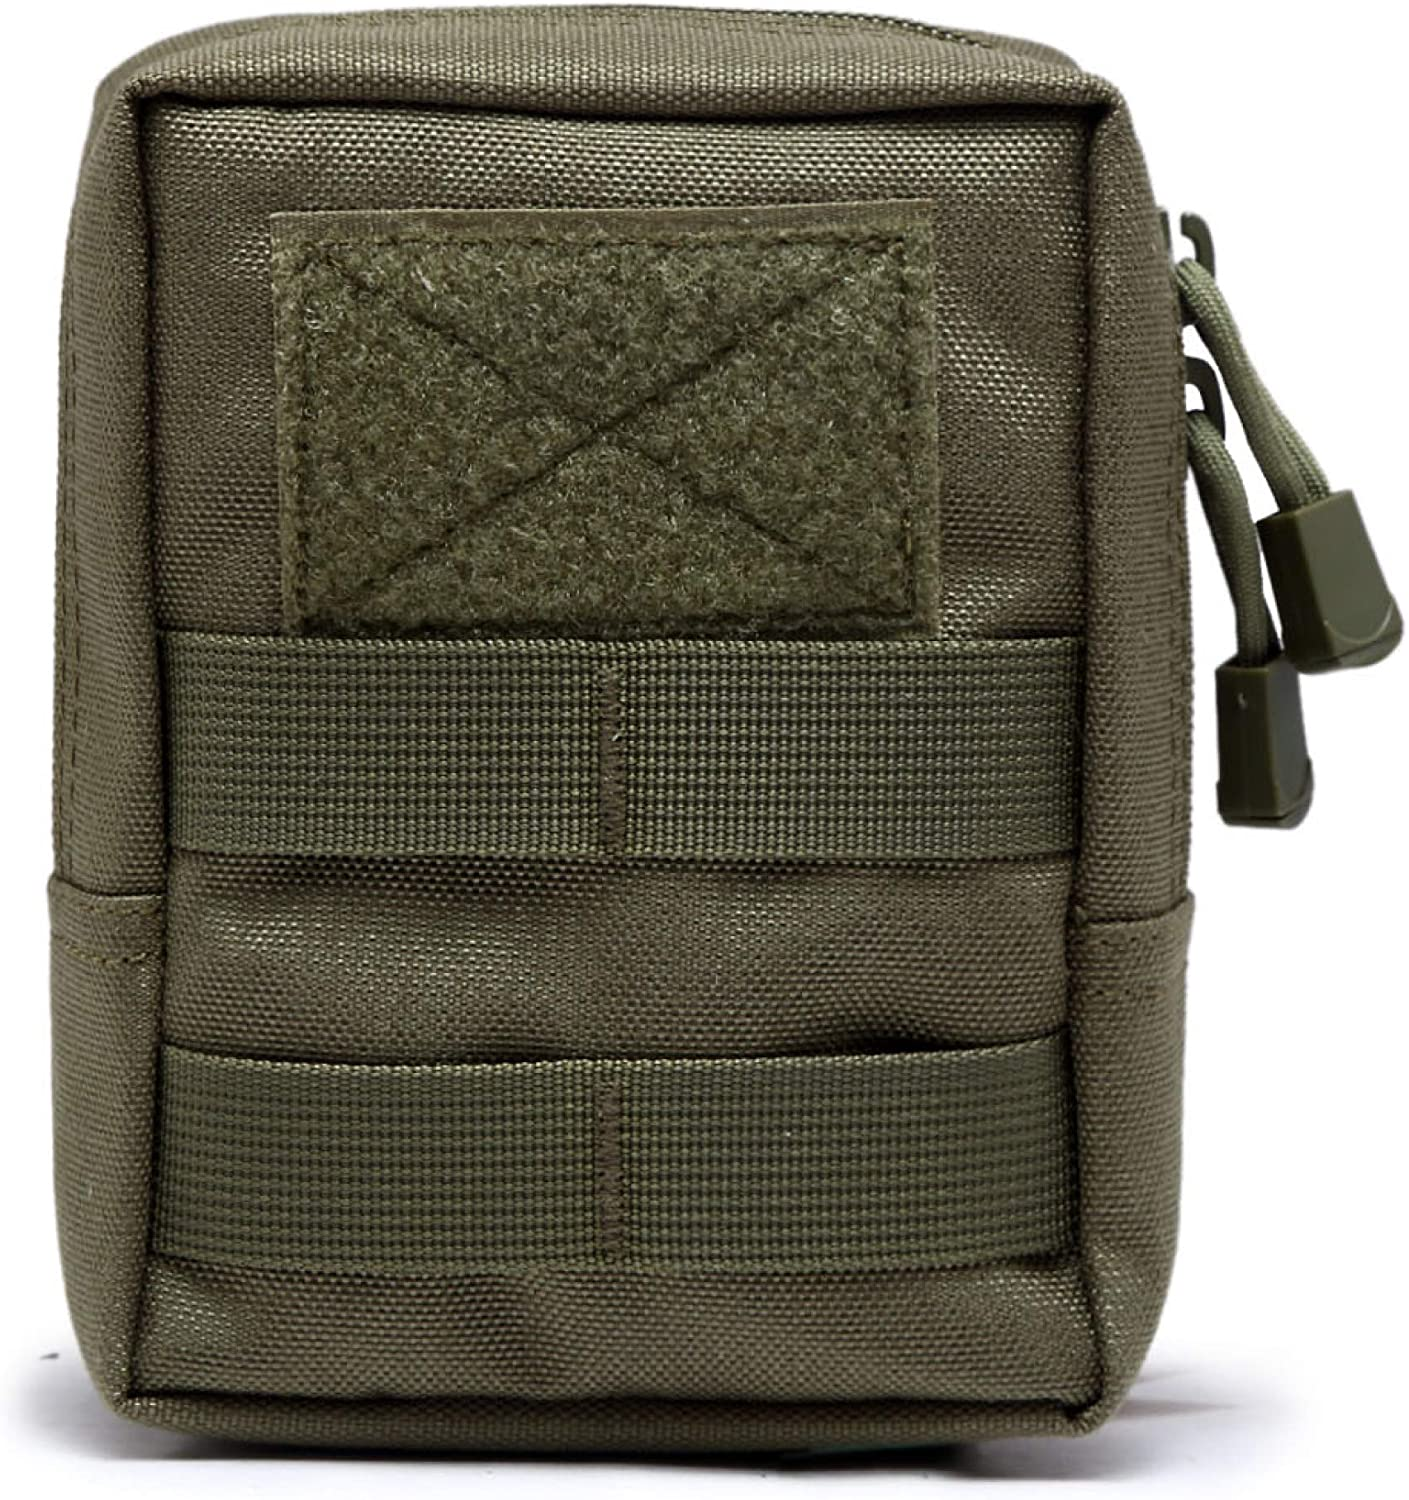 TRIWONDER Tactical Molle Pouch EDC Utility Pouch Bags Wallet Pouch Waist Bag Pack Outdoor Accessory Bag for Backpack Military Airsoft Shooting Storage Bag